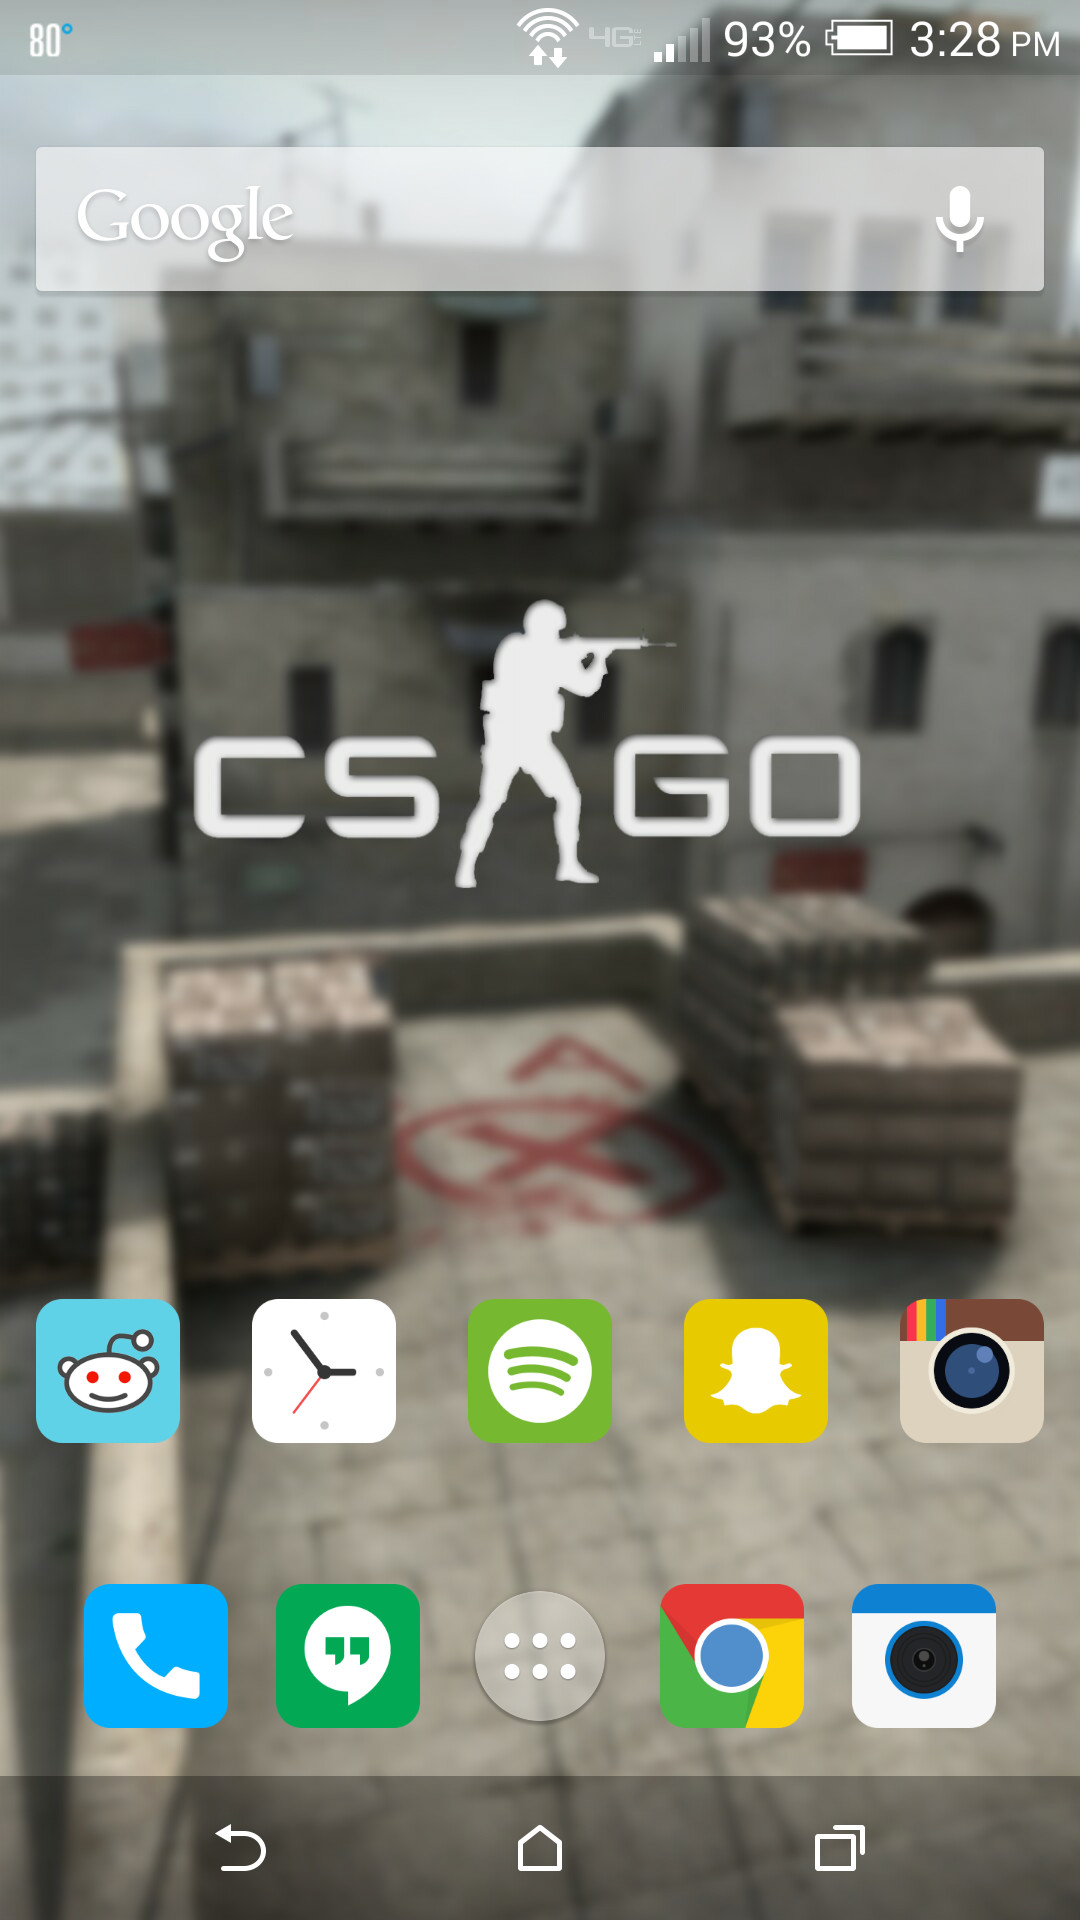 Couldn't find a god CSGO phone wallpaper so I made one. DL link in comments  if you want it.